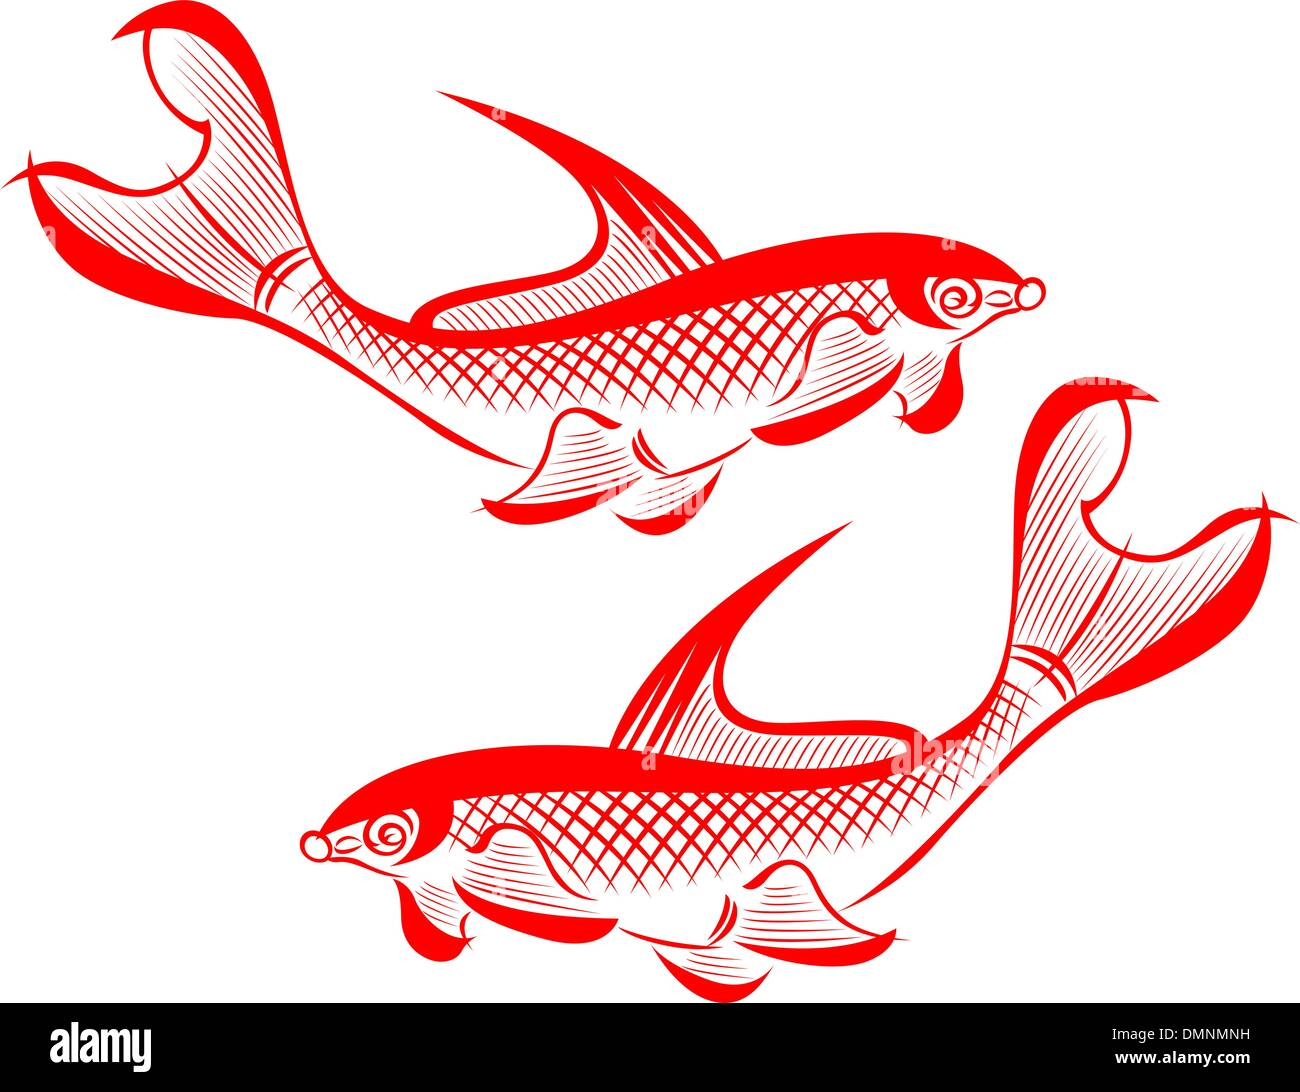 Fish Illustration Stock Photos & Fish Illustration Stock Images - Alamy